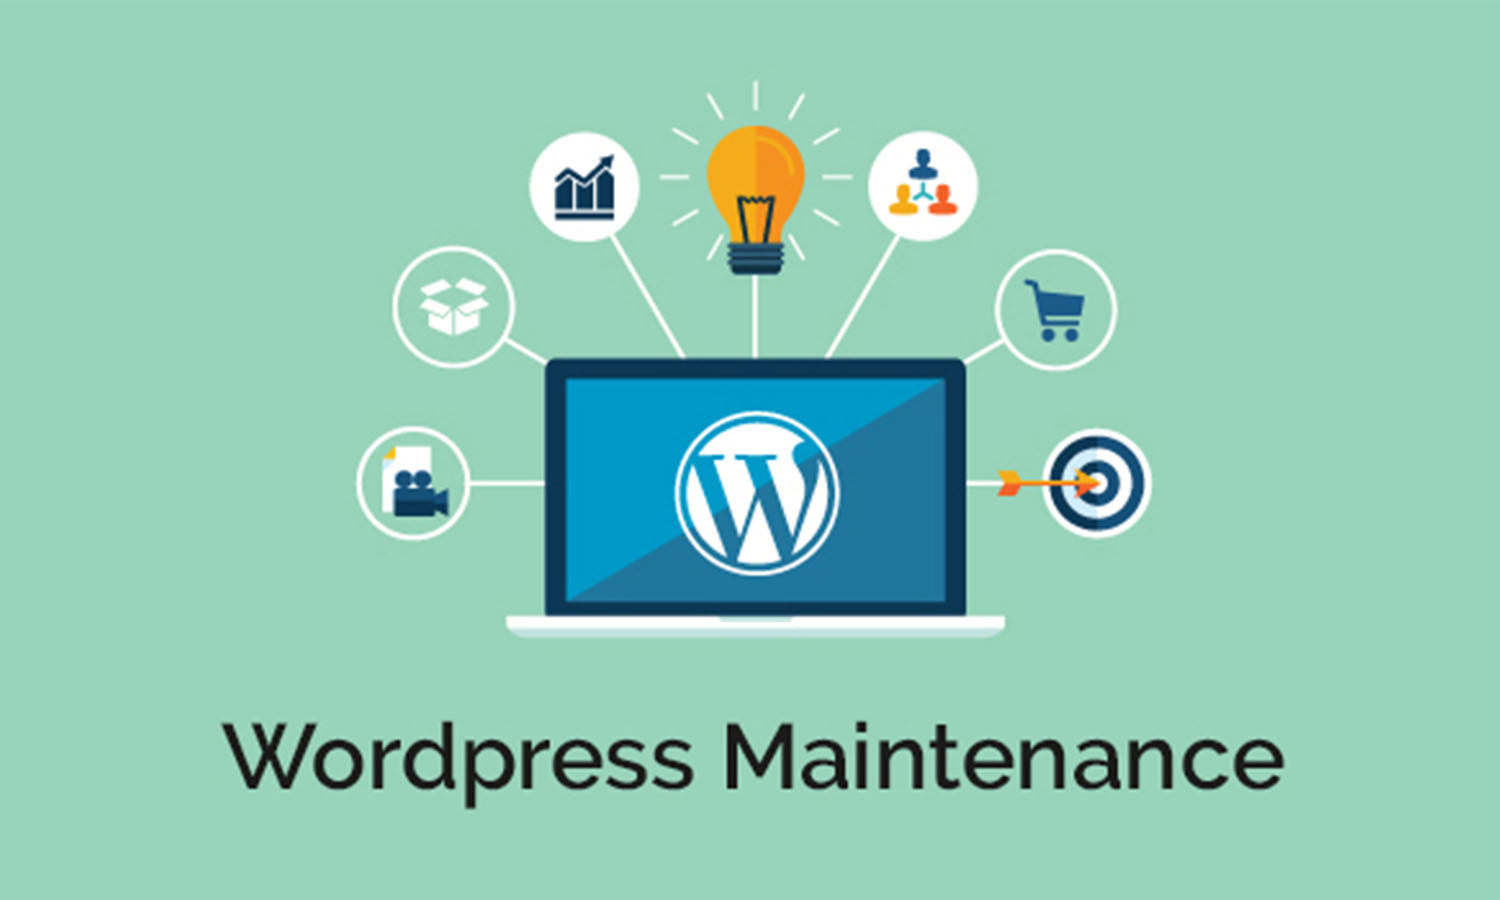 Top 5 Reasons Why WordPress Maintenance is Important